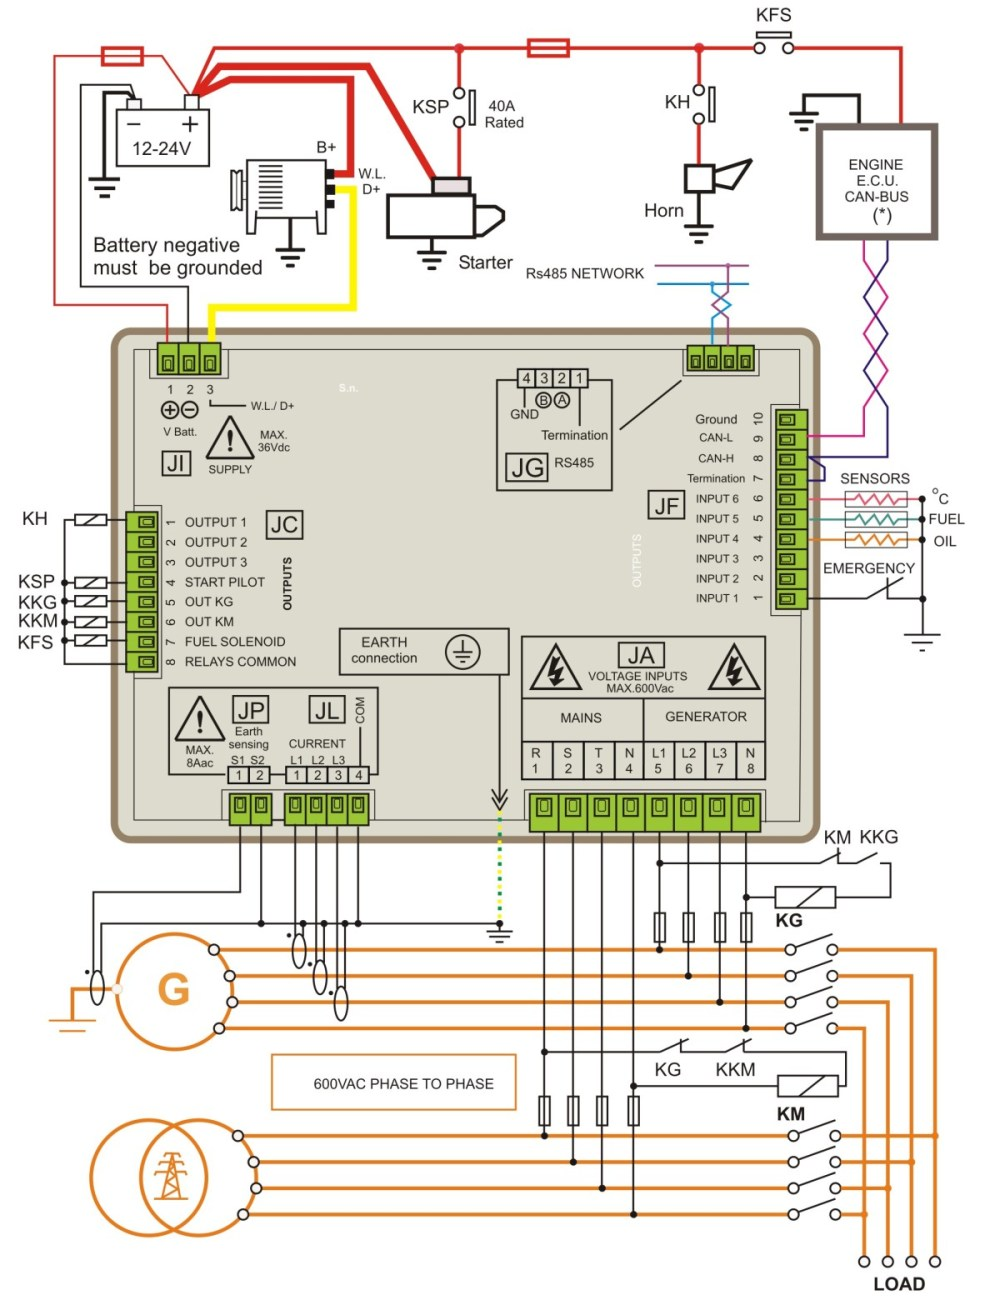 medium resolution of kubota generator wiring diagram my wiring diagram kubota generator wiring